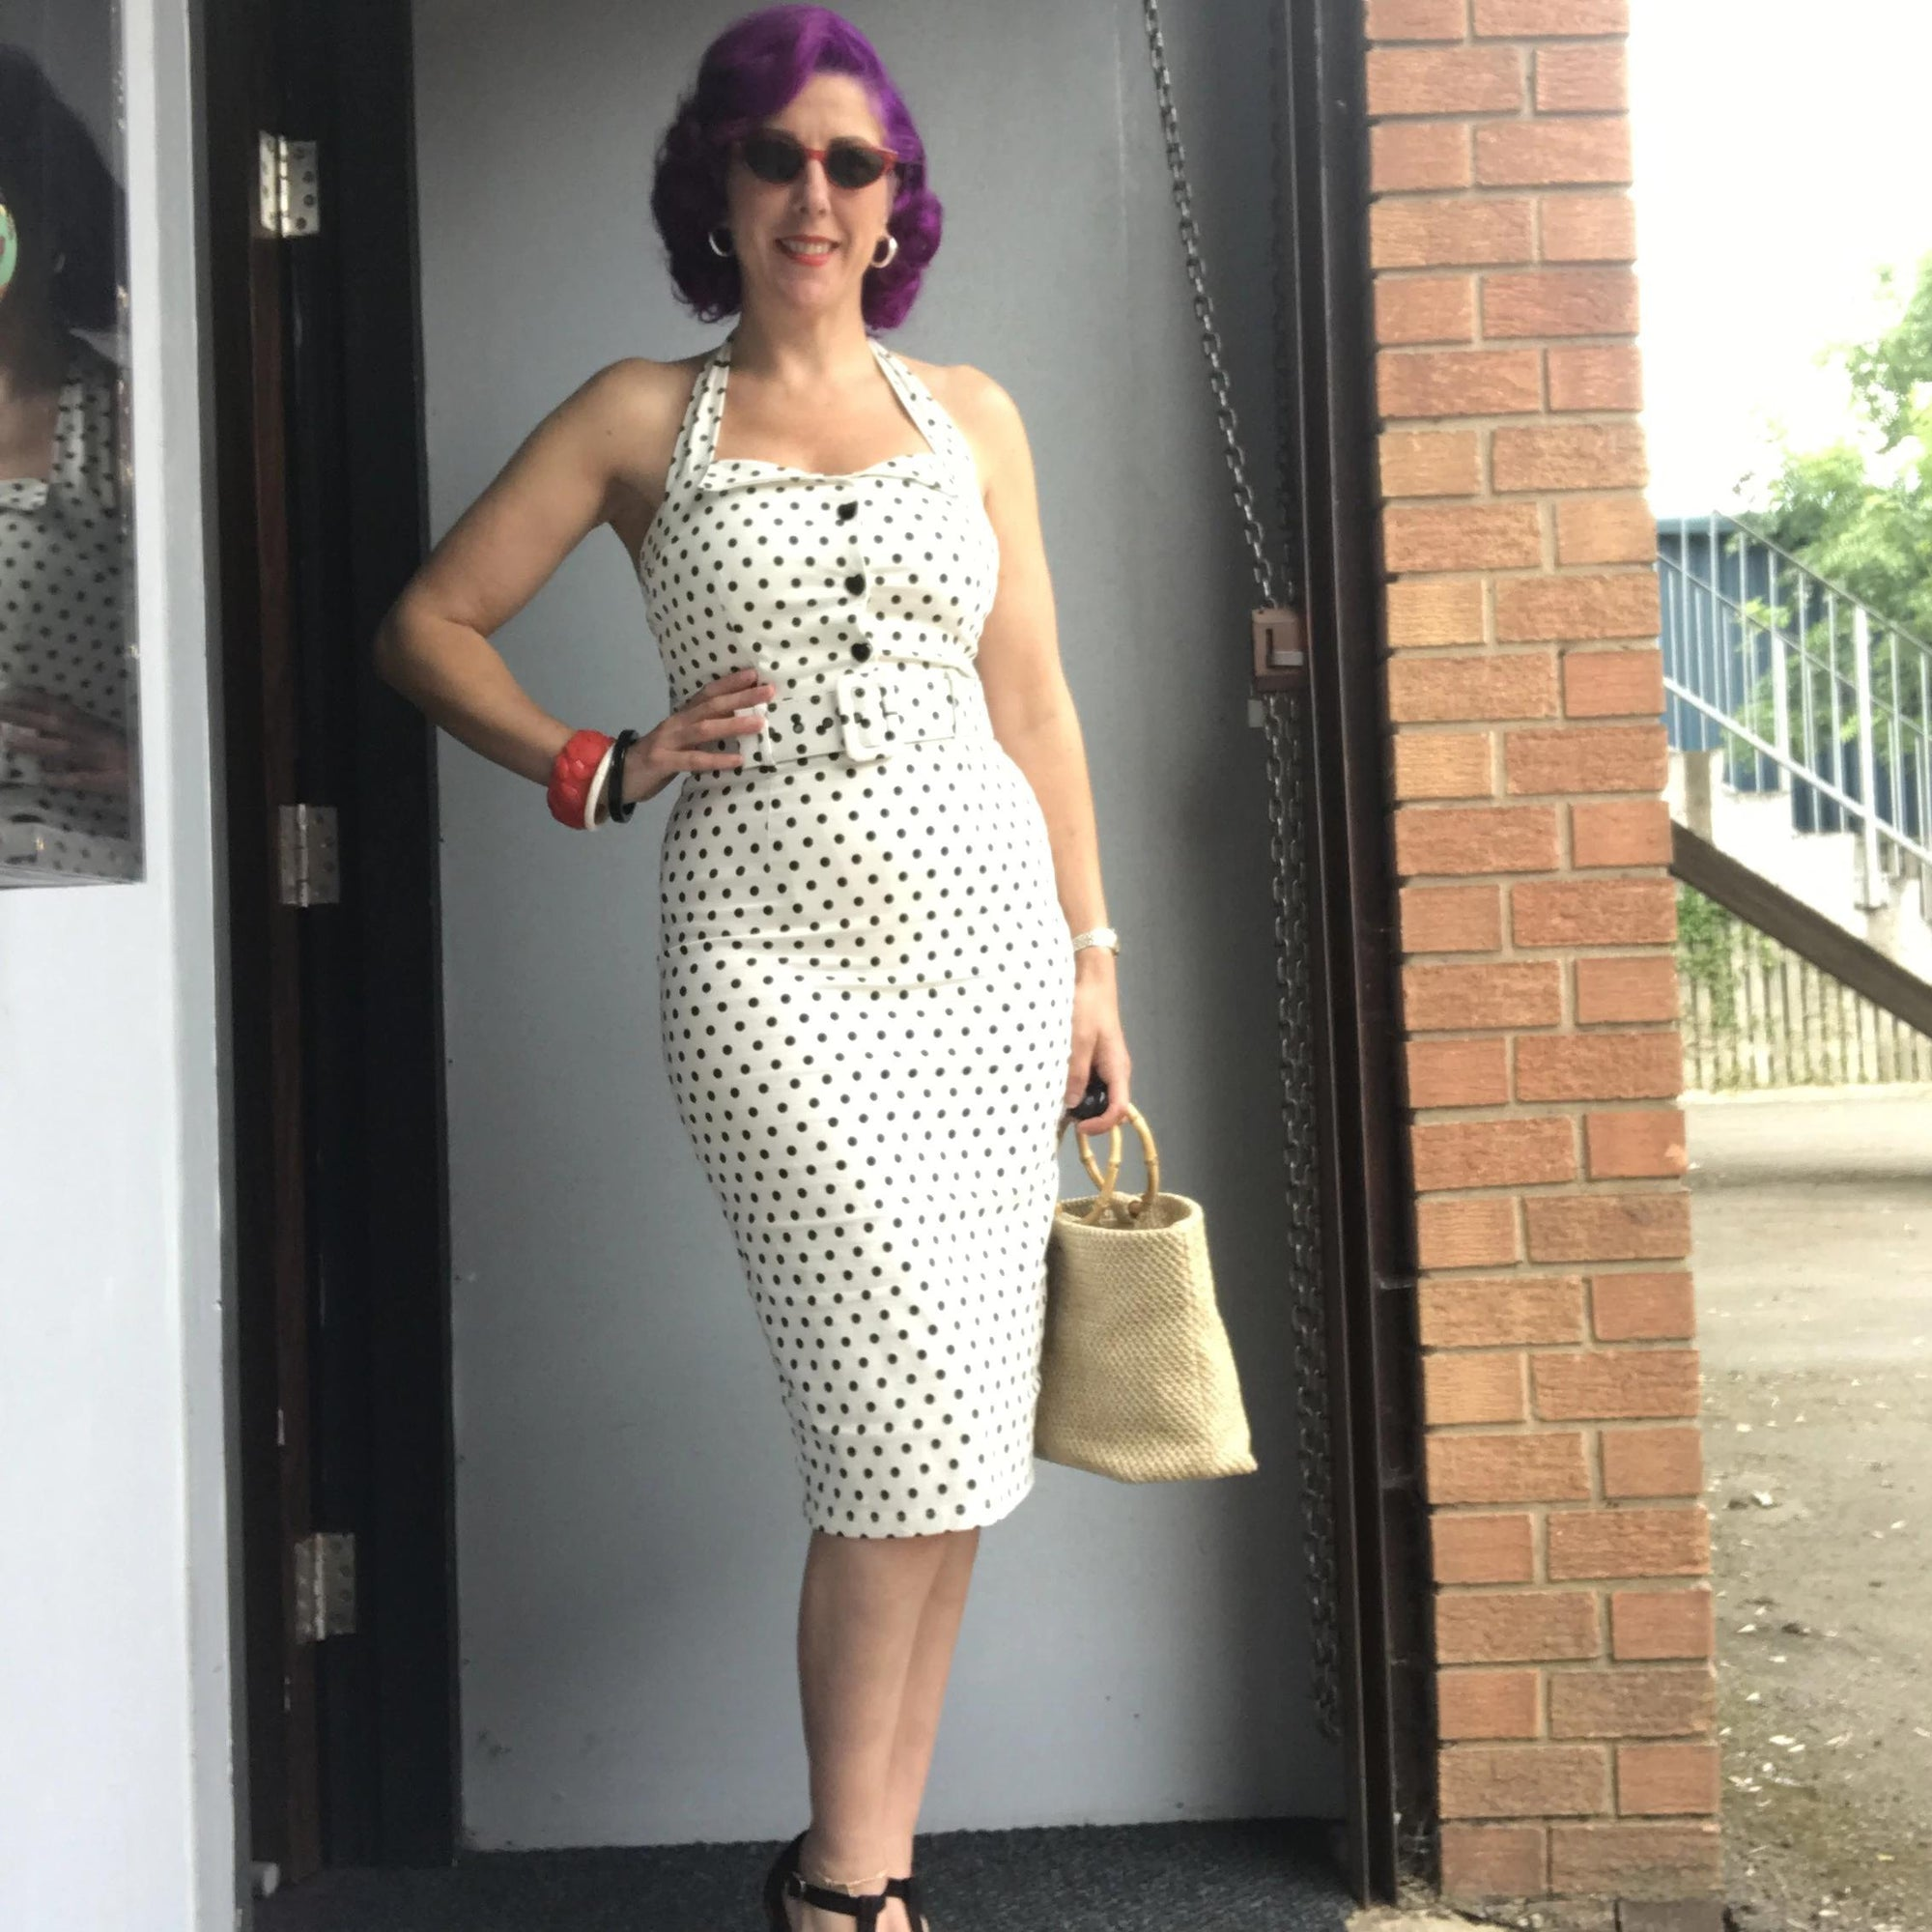 Collectif Mainline Wanda Polka Dot Pencil Dress